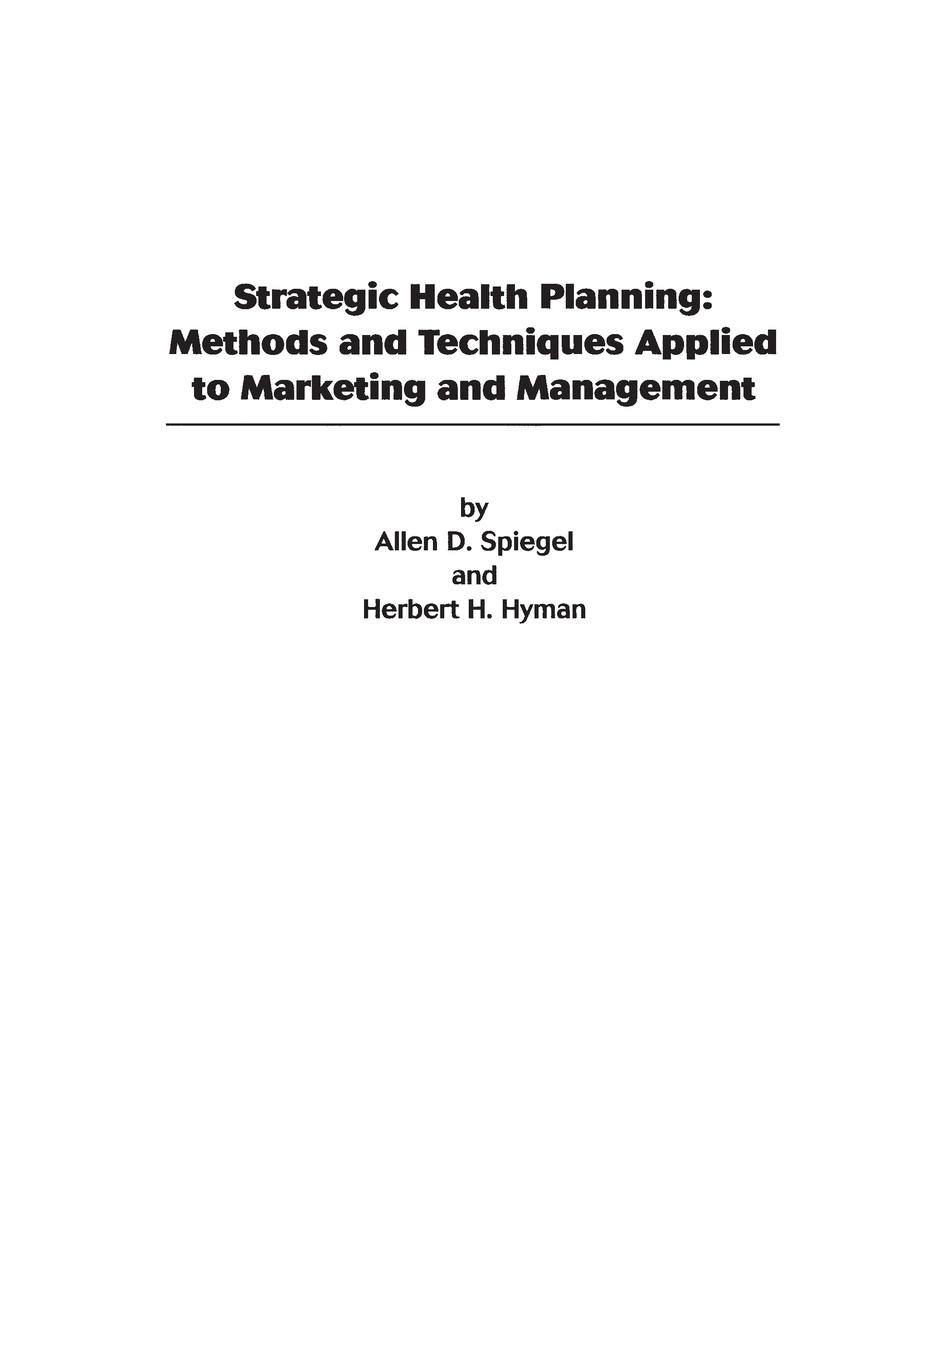 лучшая цена Allen D. Spiegel Strategic Health Planning. Methods and Techniques Applied to Marketing/Management